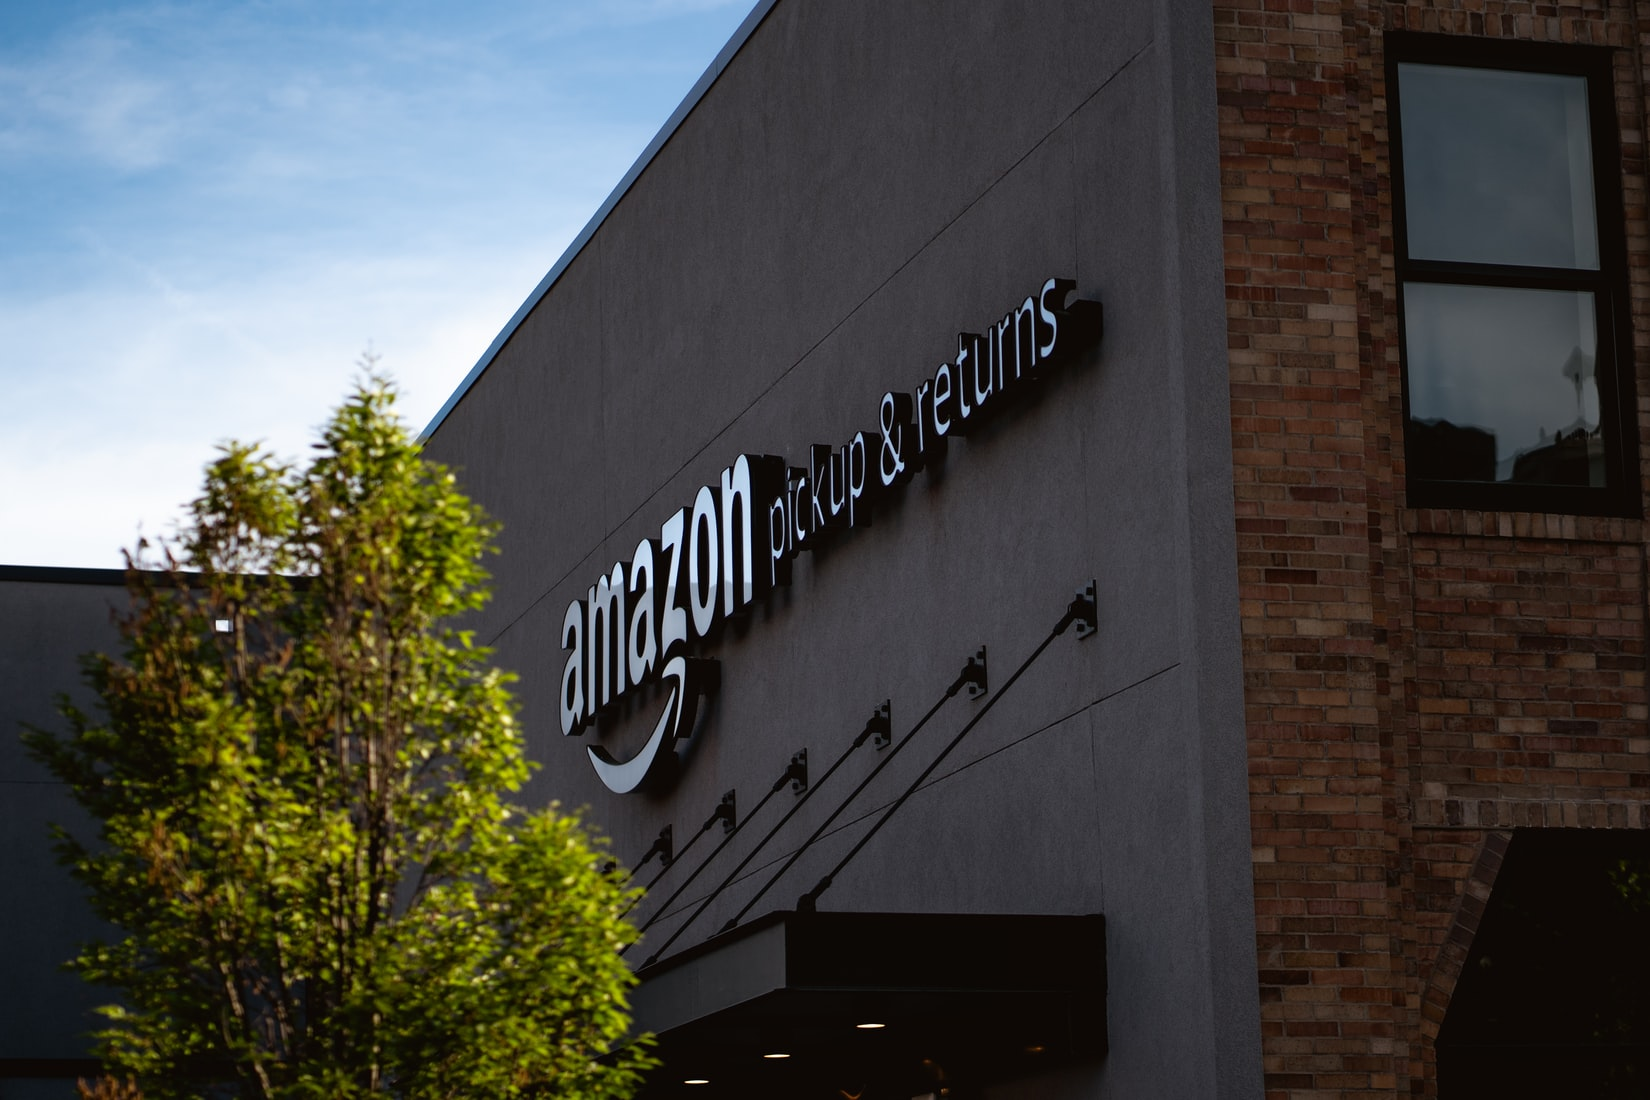 Amazon and Goldman Sachs Wade Deeper Into Financial Services